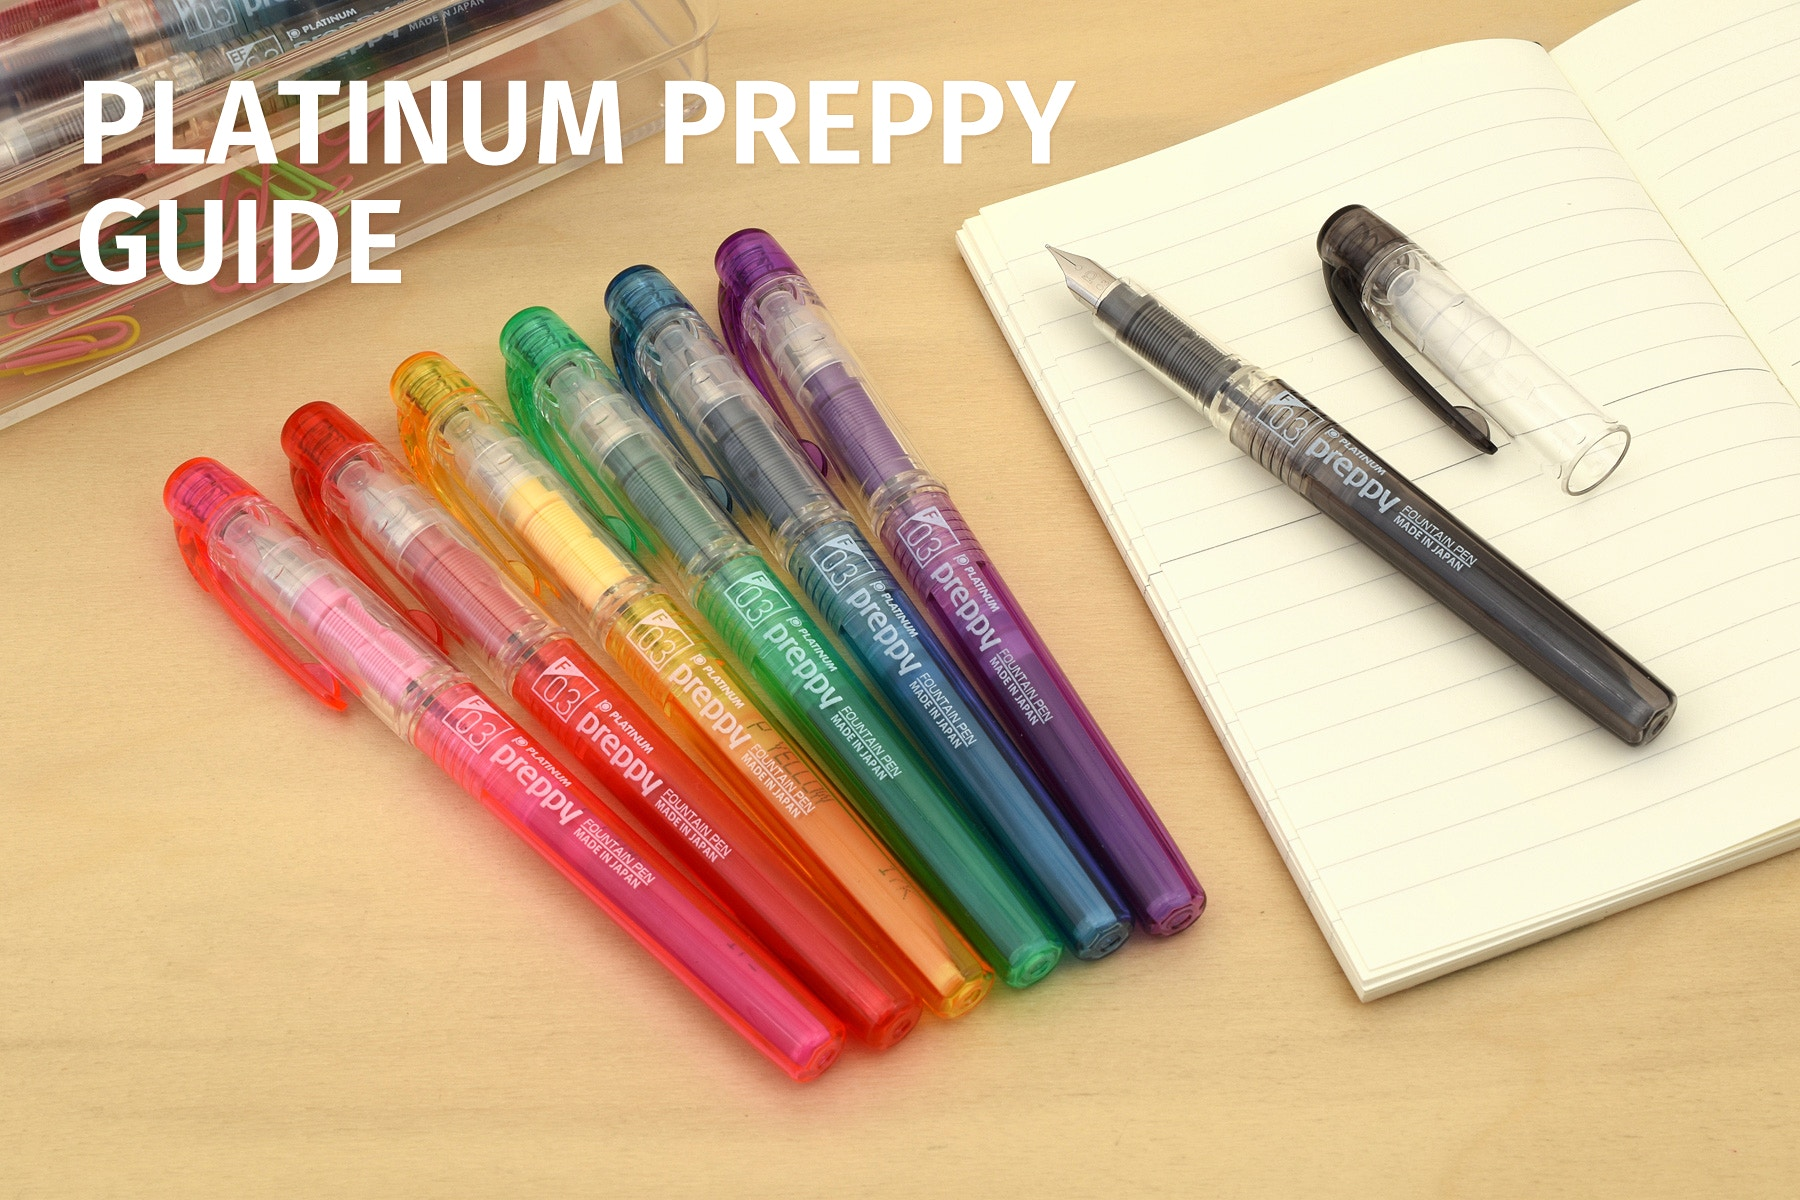 Platinum Preppy: A Comprehensive Guide | JetPens